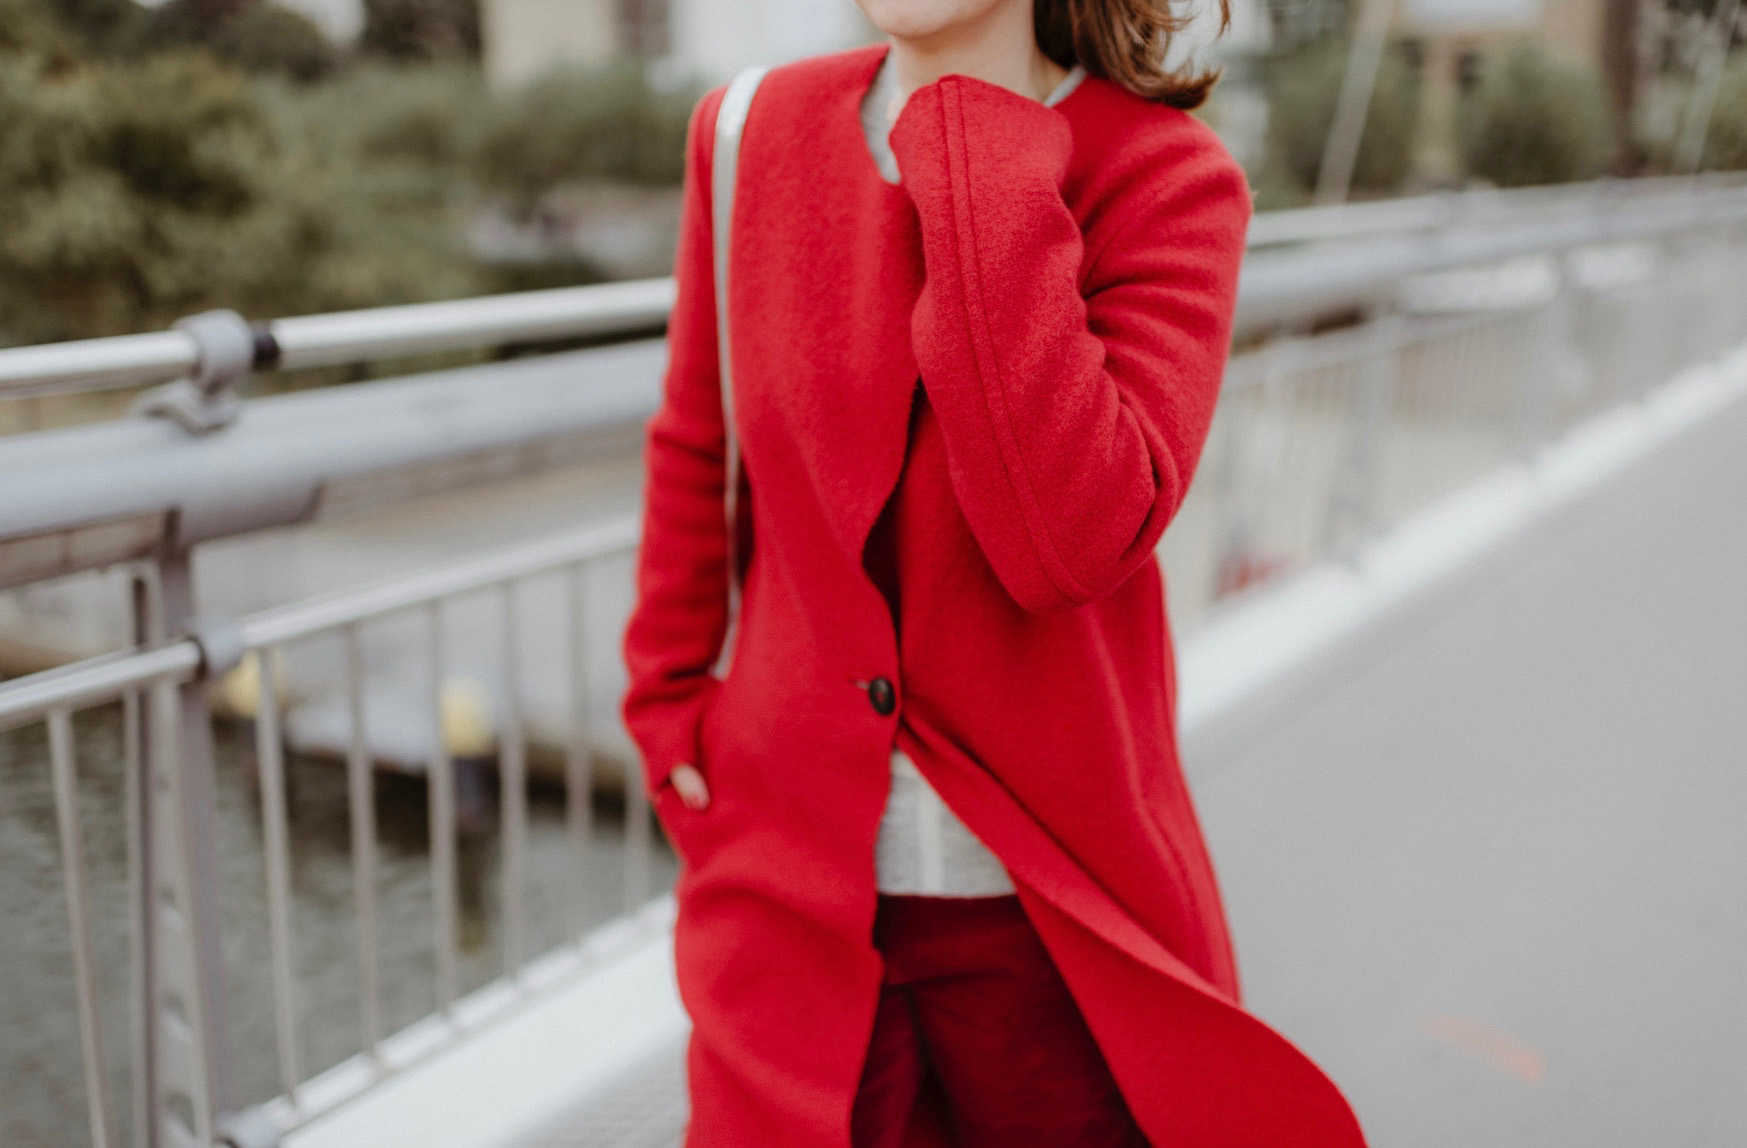 greenlooksgreat-red-coat-detail-lanius-eco-fashion